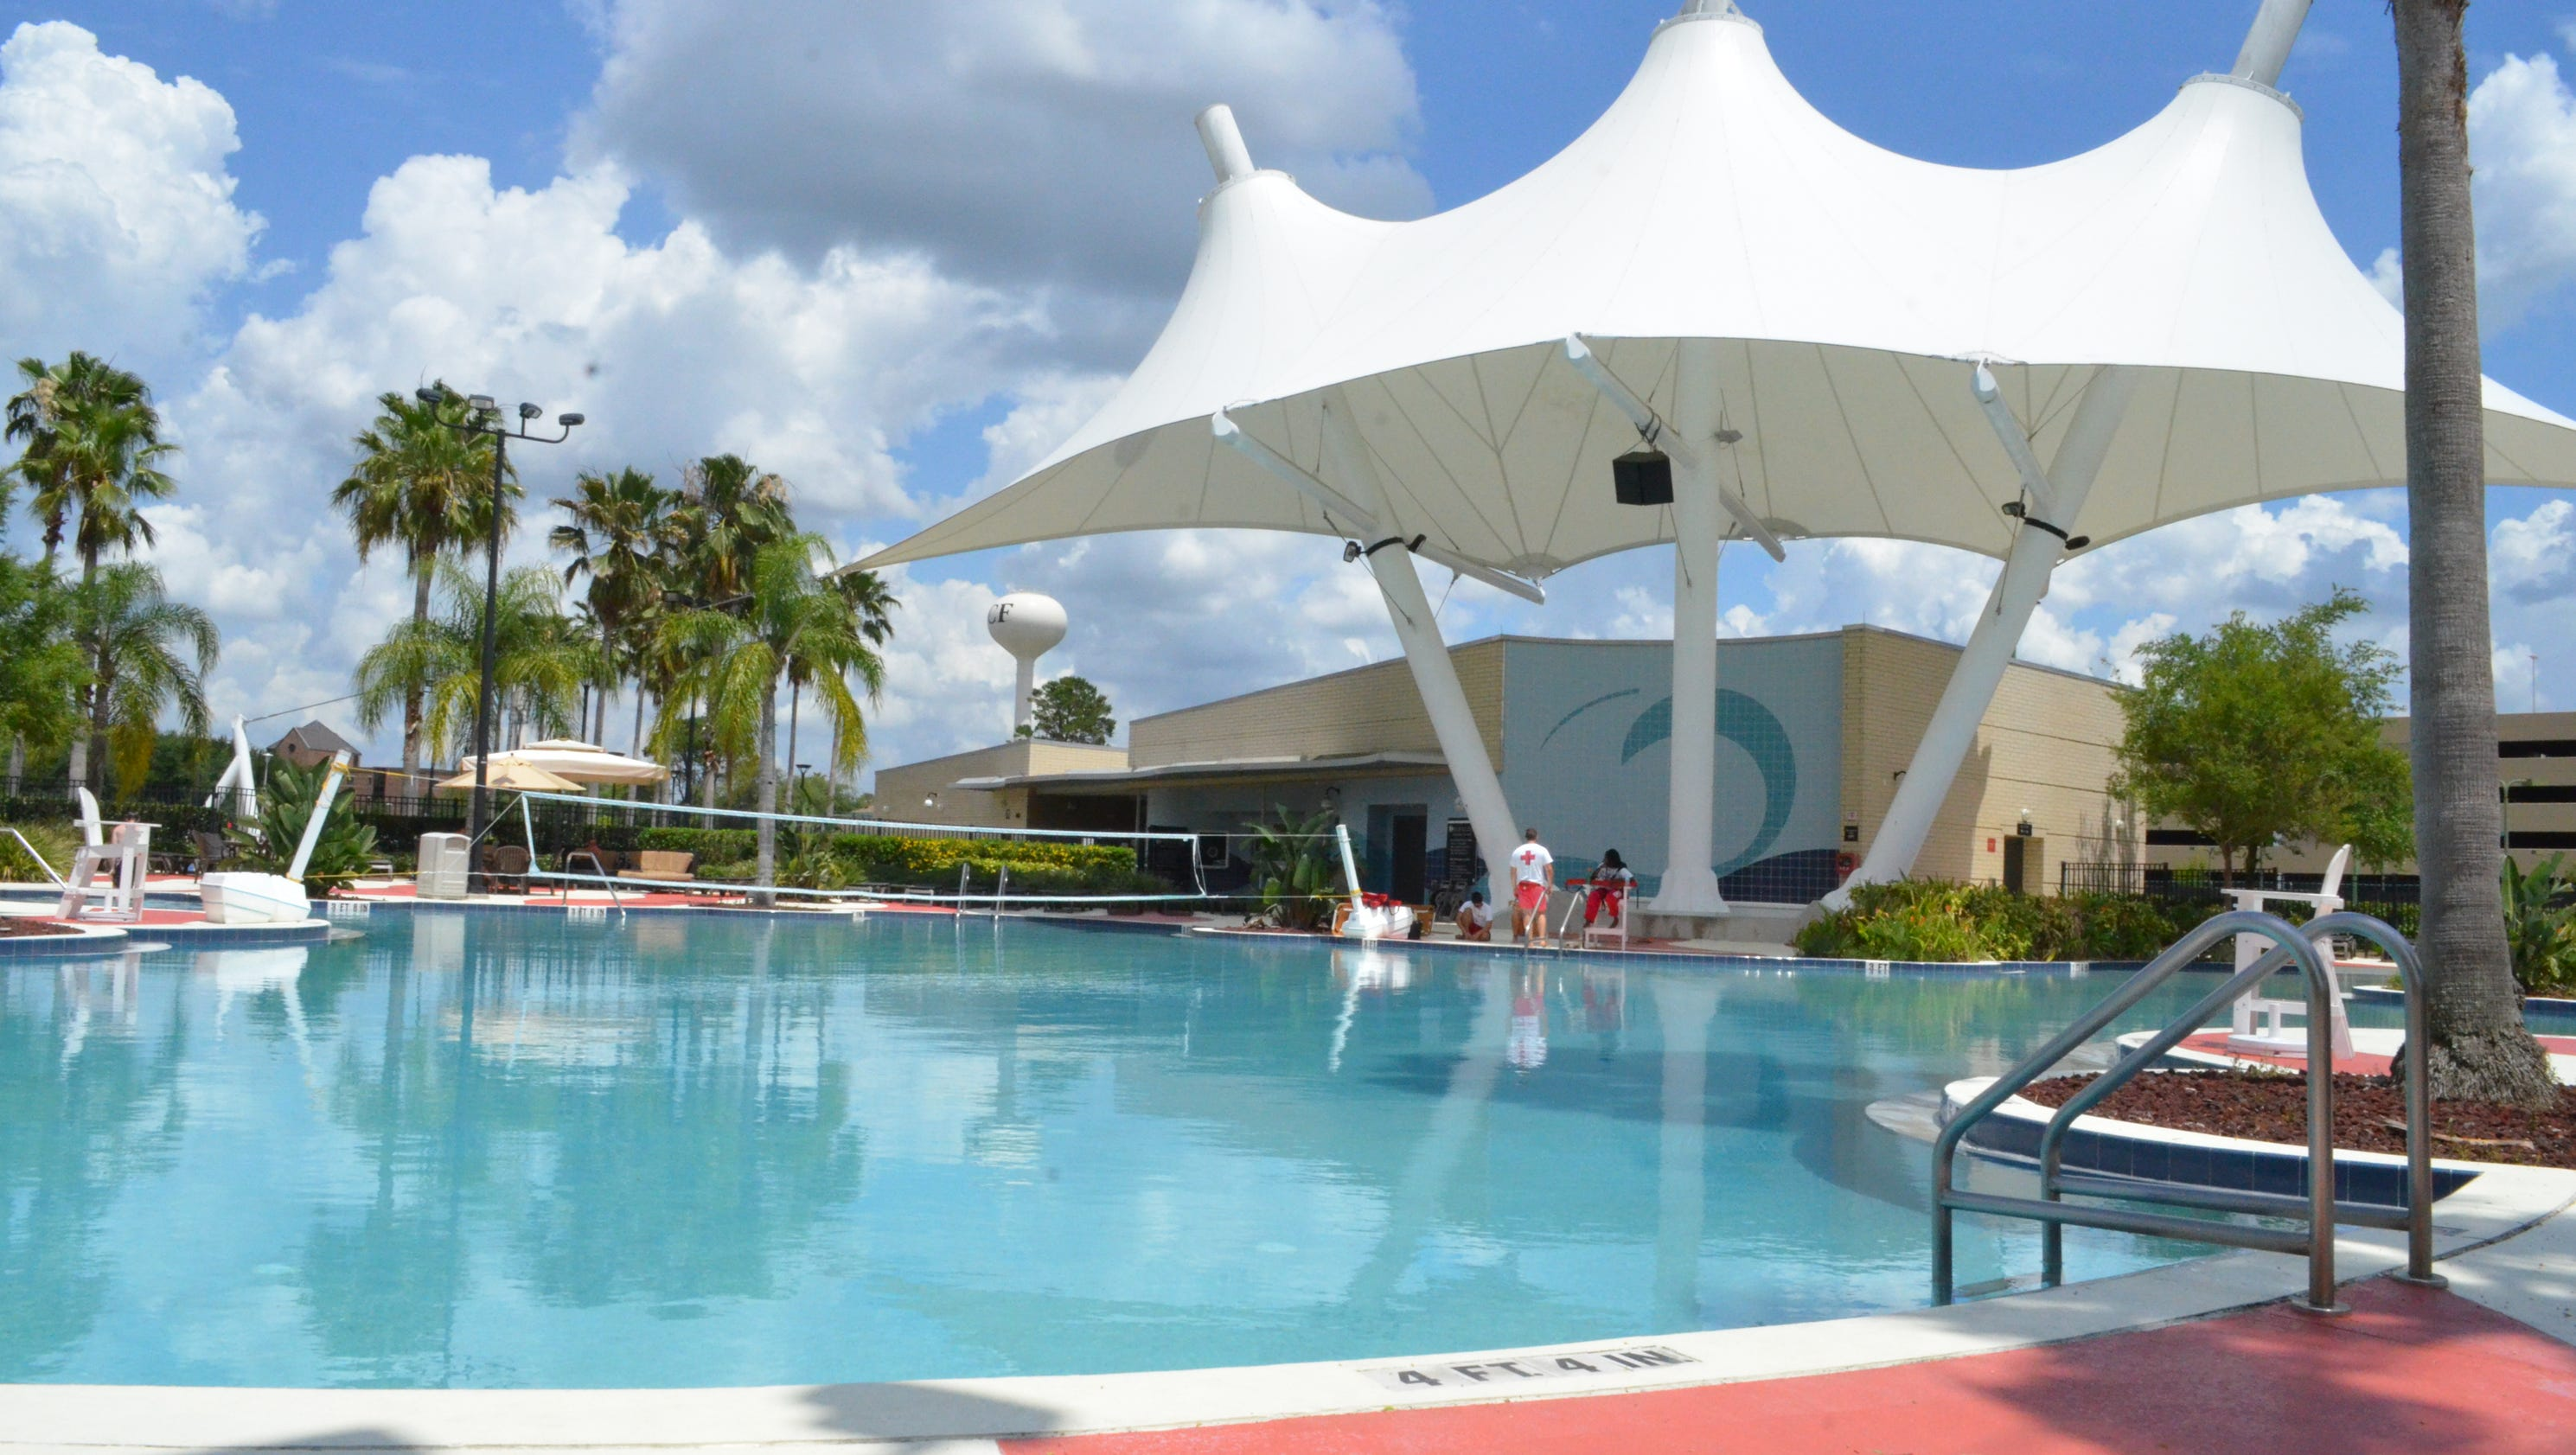 Pool Ucf Ranked Among Top 30 Best College Leisure Pools